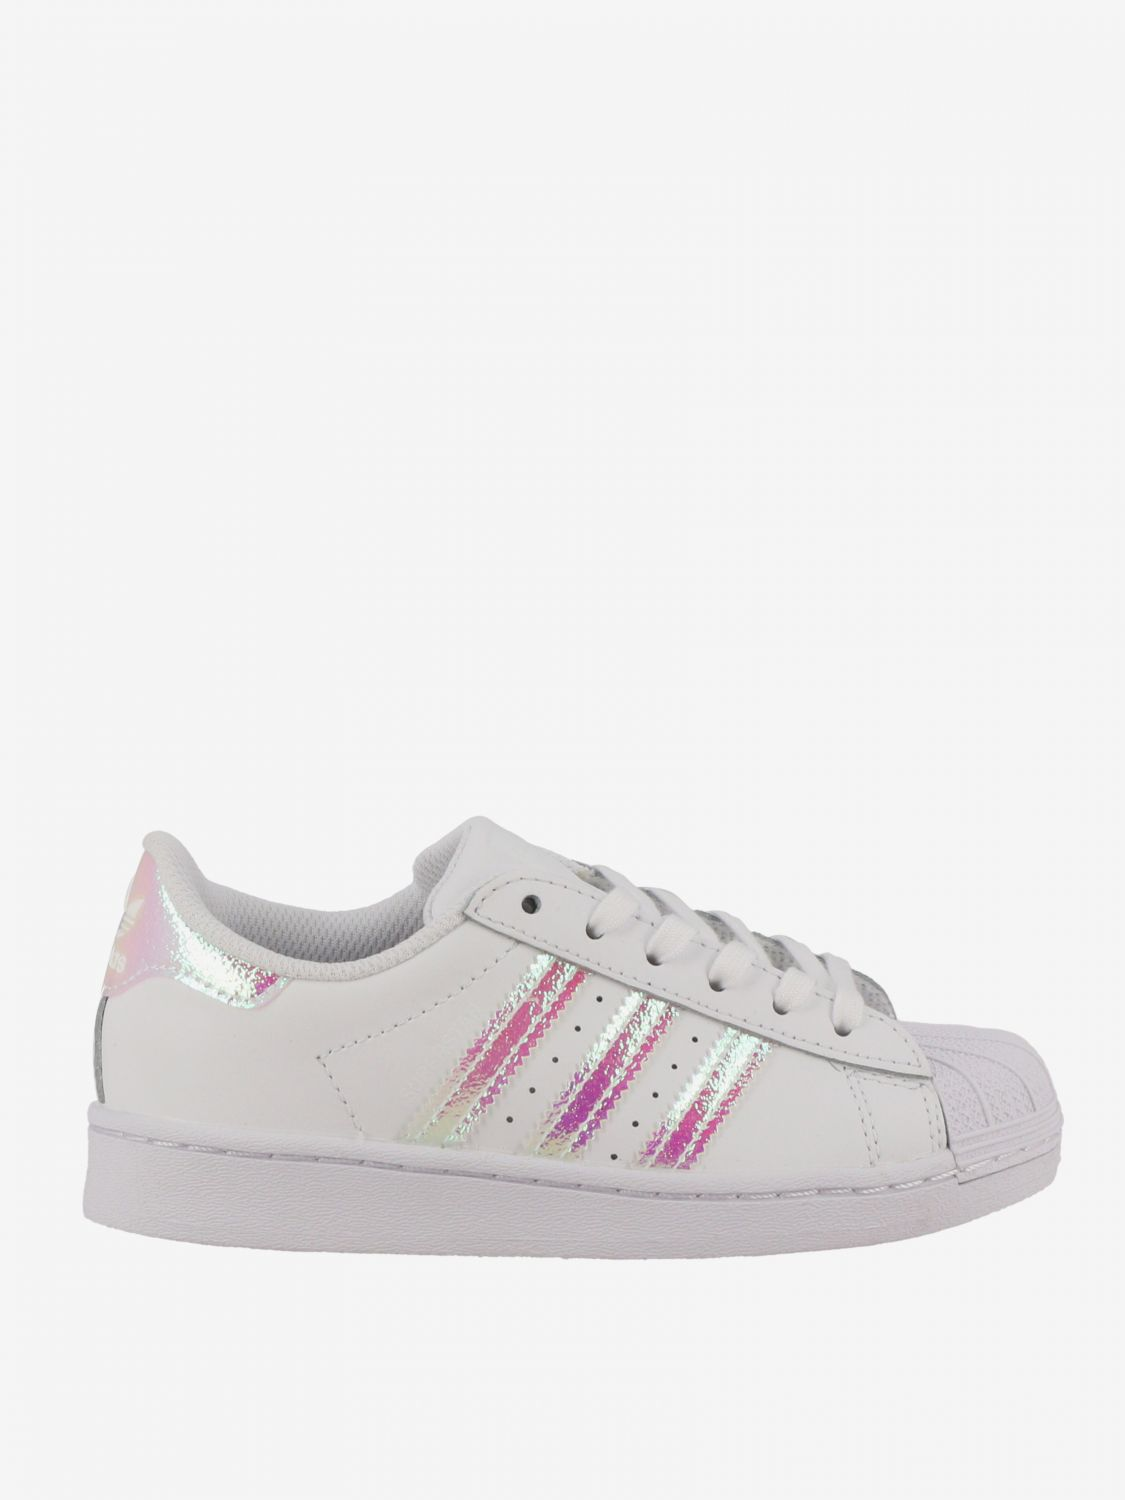 Shoes Adidas Originals: Superstar Adidas Originals sneakers in leather with logo white 1